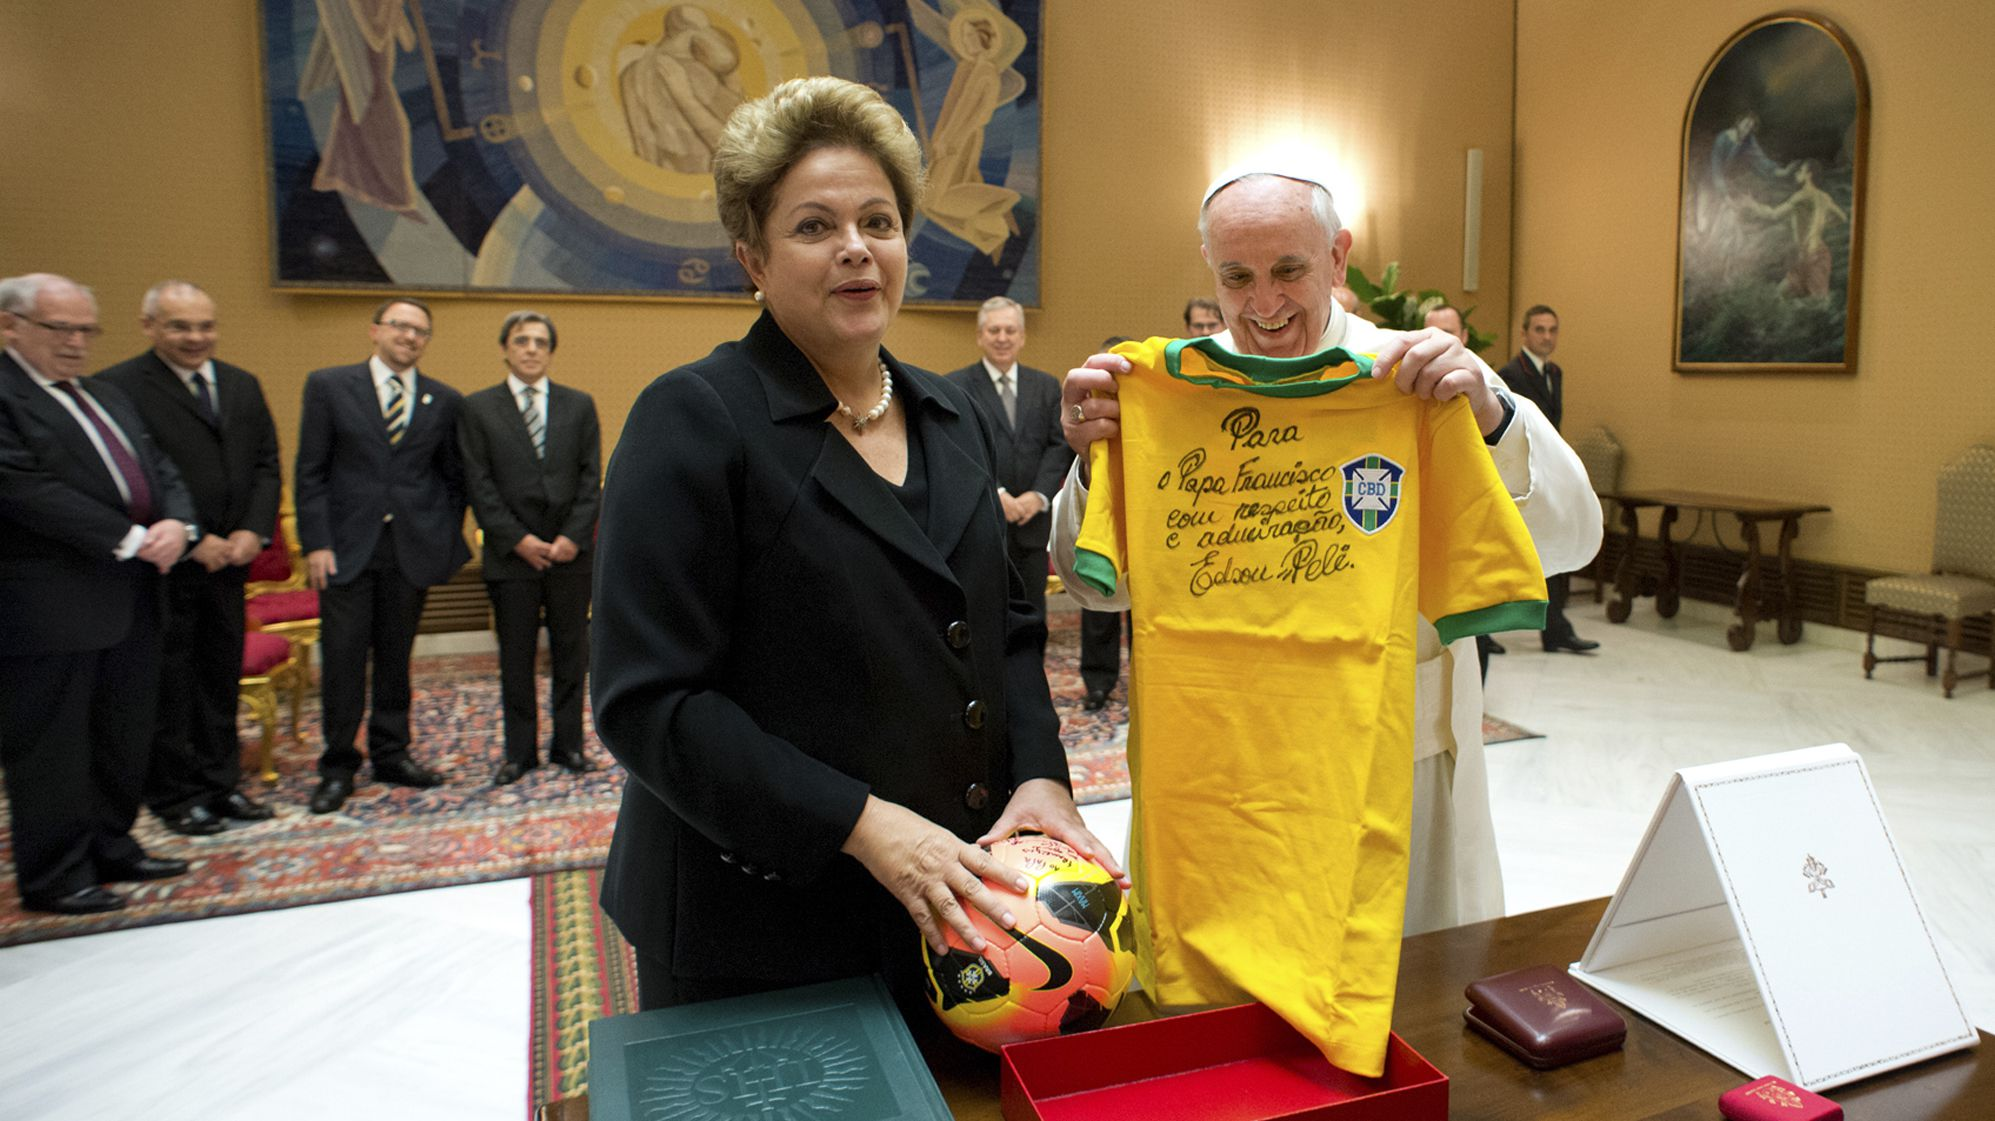 Brazilian President Dilma Rousseff and Pope Francis